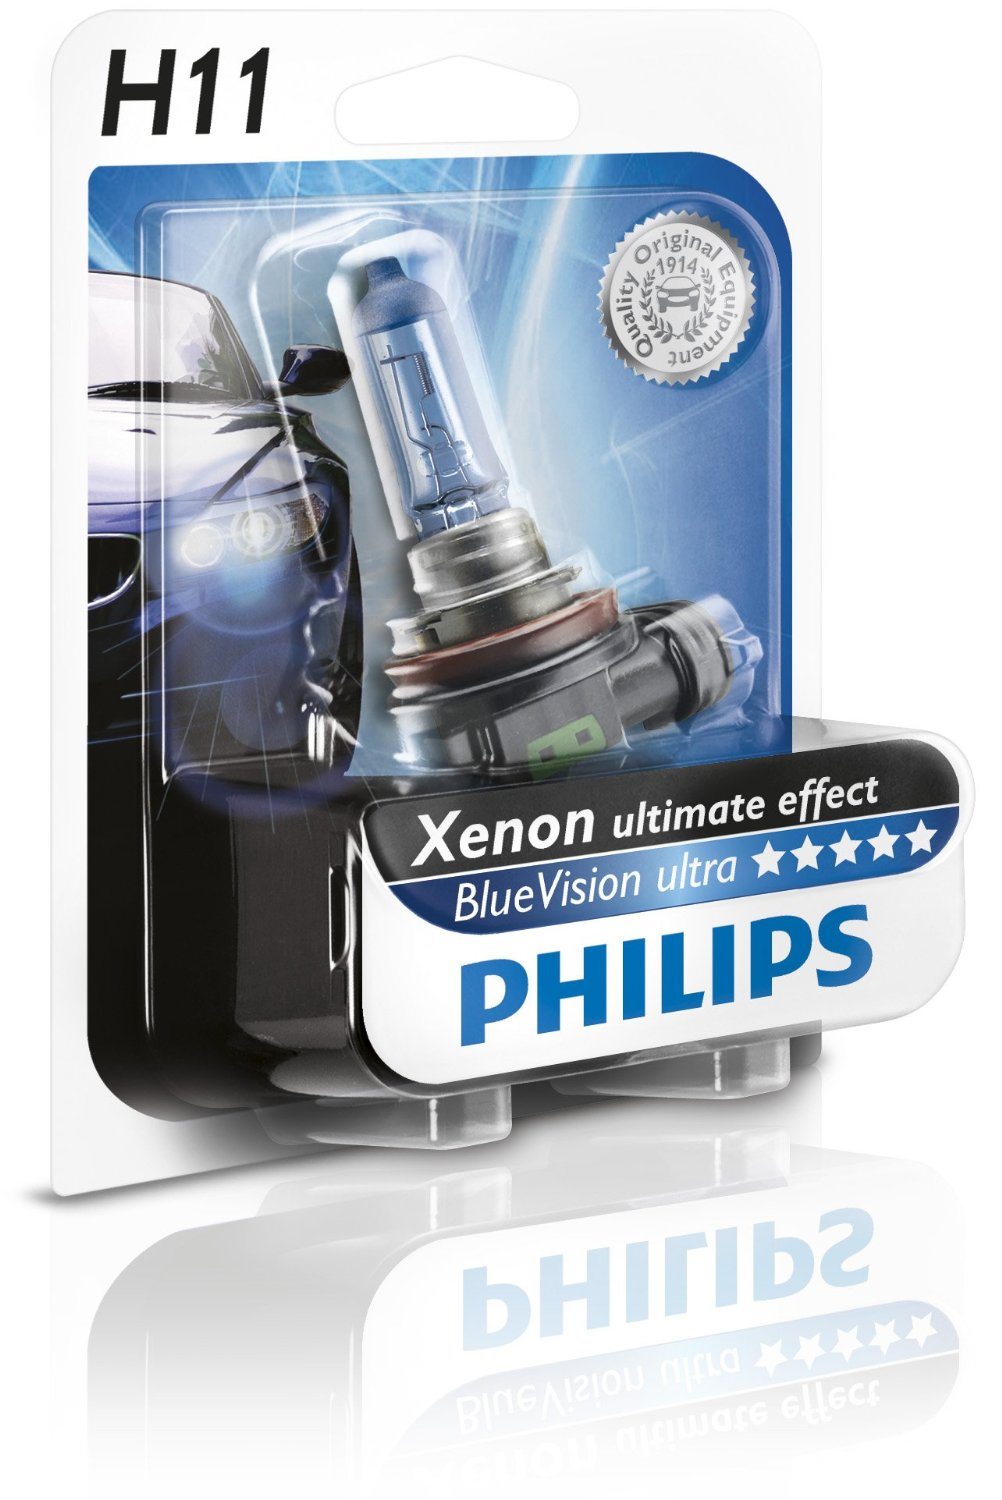 1 Ampoule H11 Philips Blue Vision Ultra 55w Yakaequiper